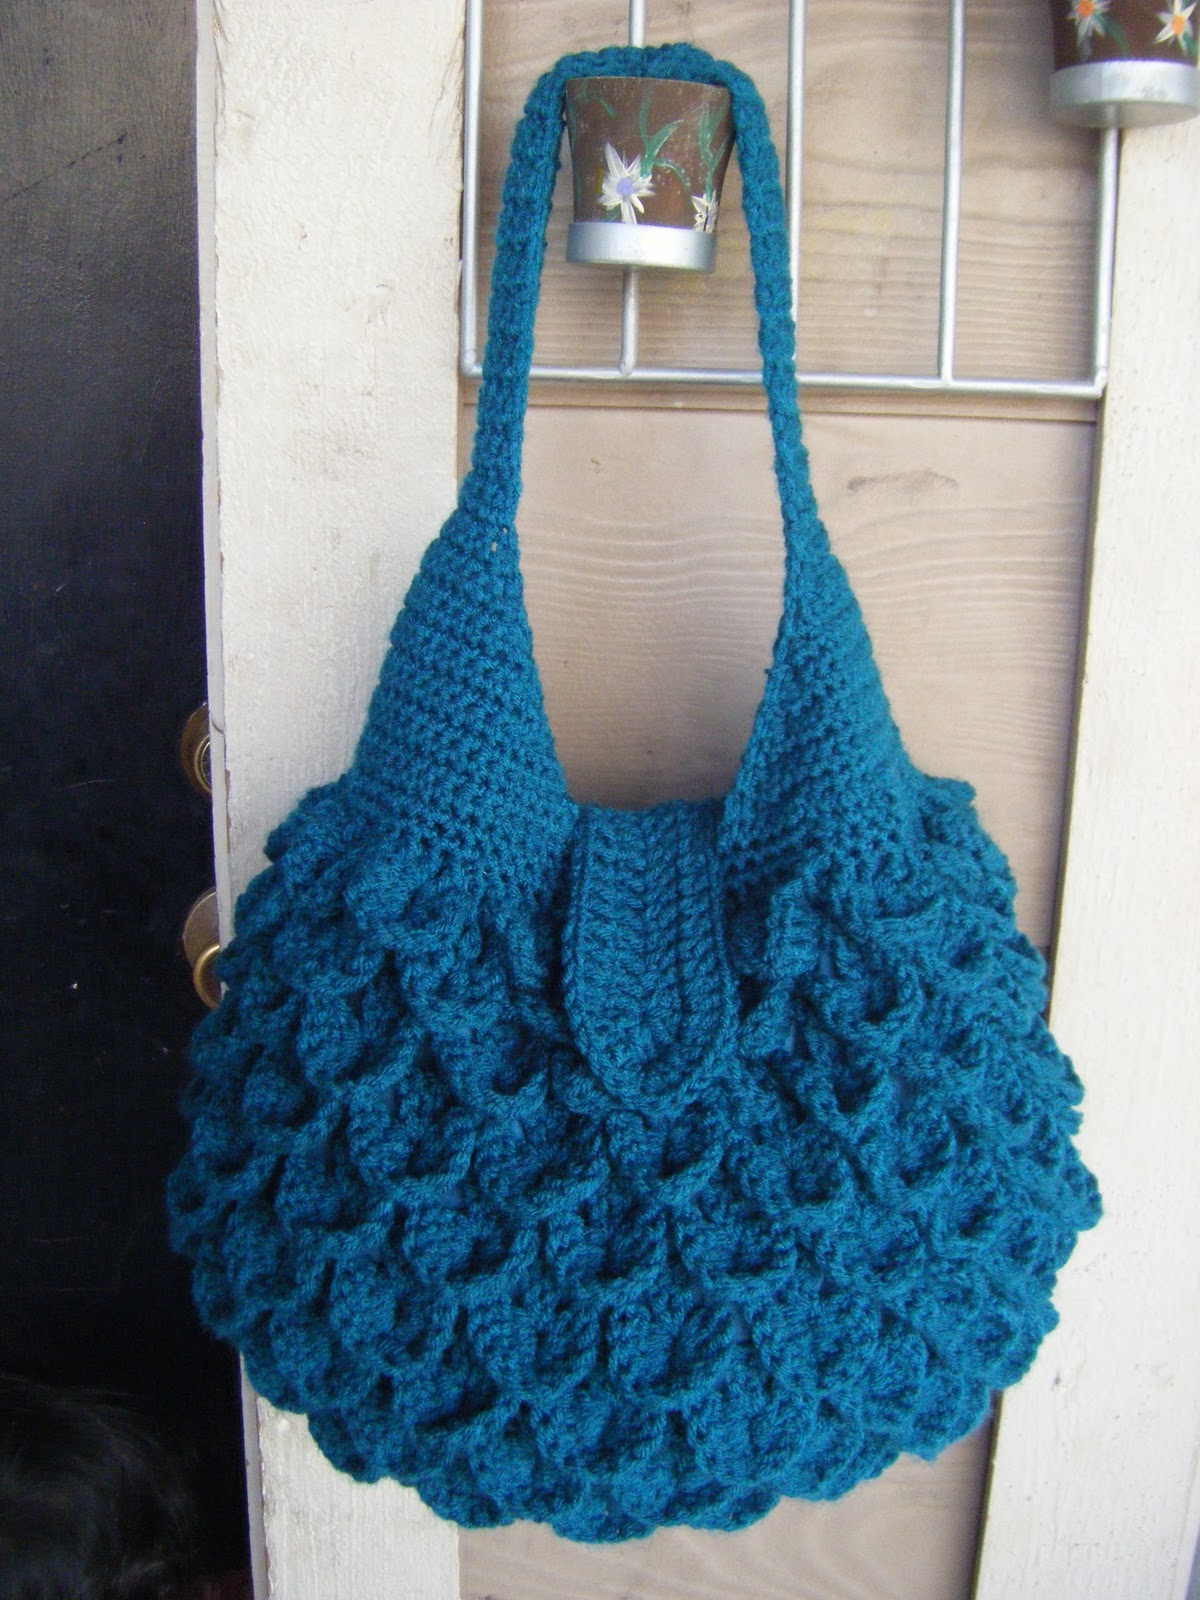 Crochet Handbag Tutorial : Free Purse Crochet Patterns, Free Bag Crochet Patterns from our